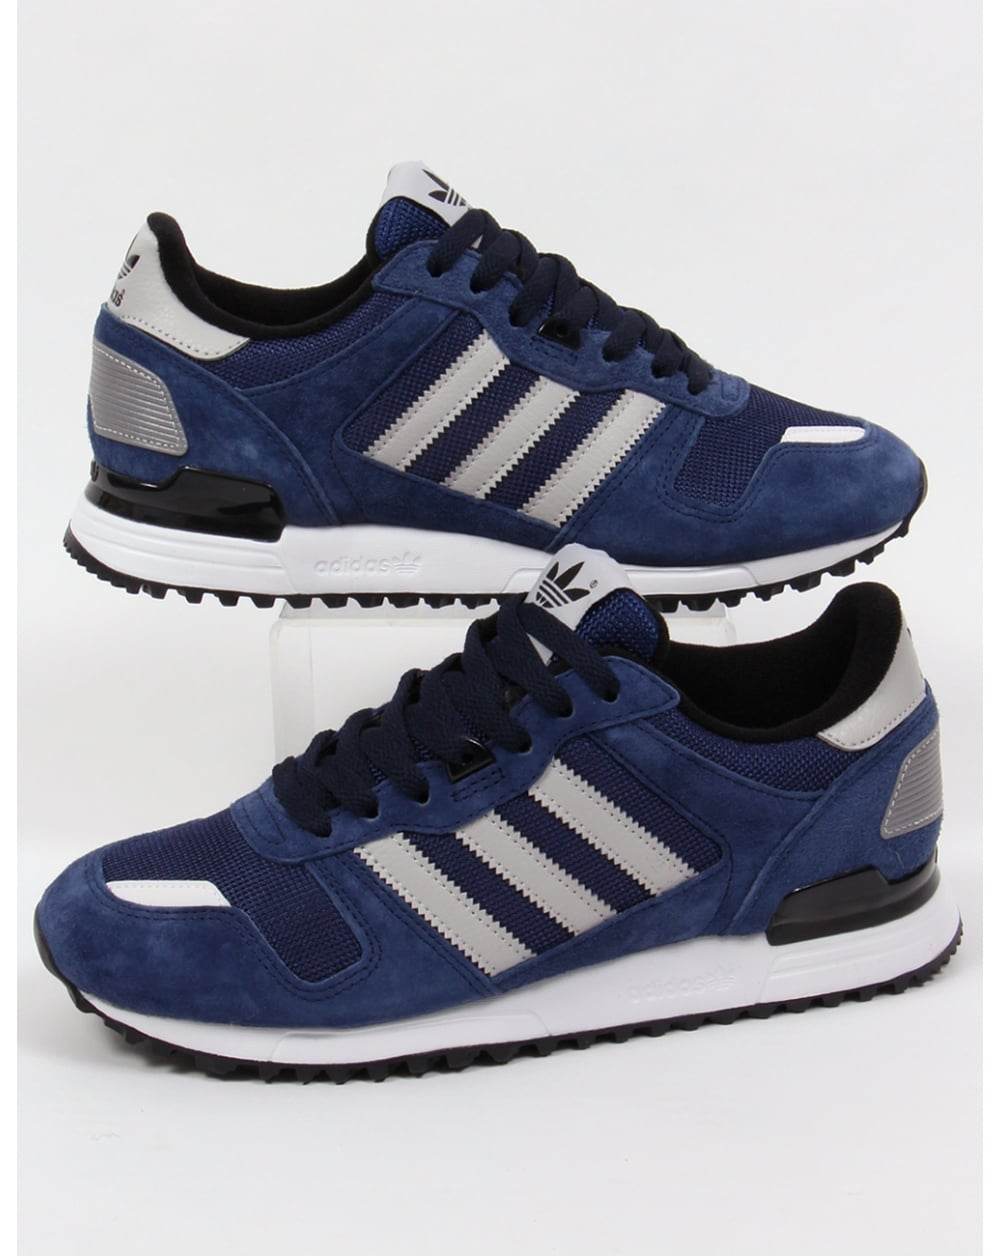 low priced special for shoe half off Adidas ZX 700 Trainers Navy/grey/black